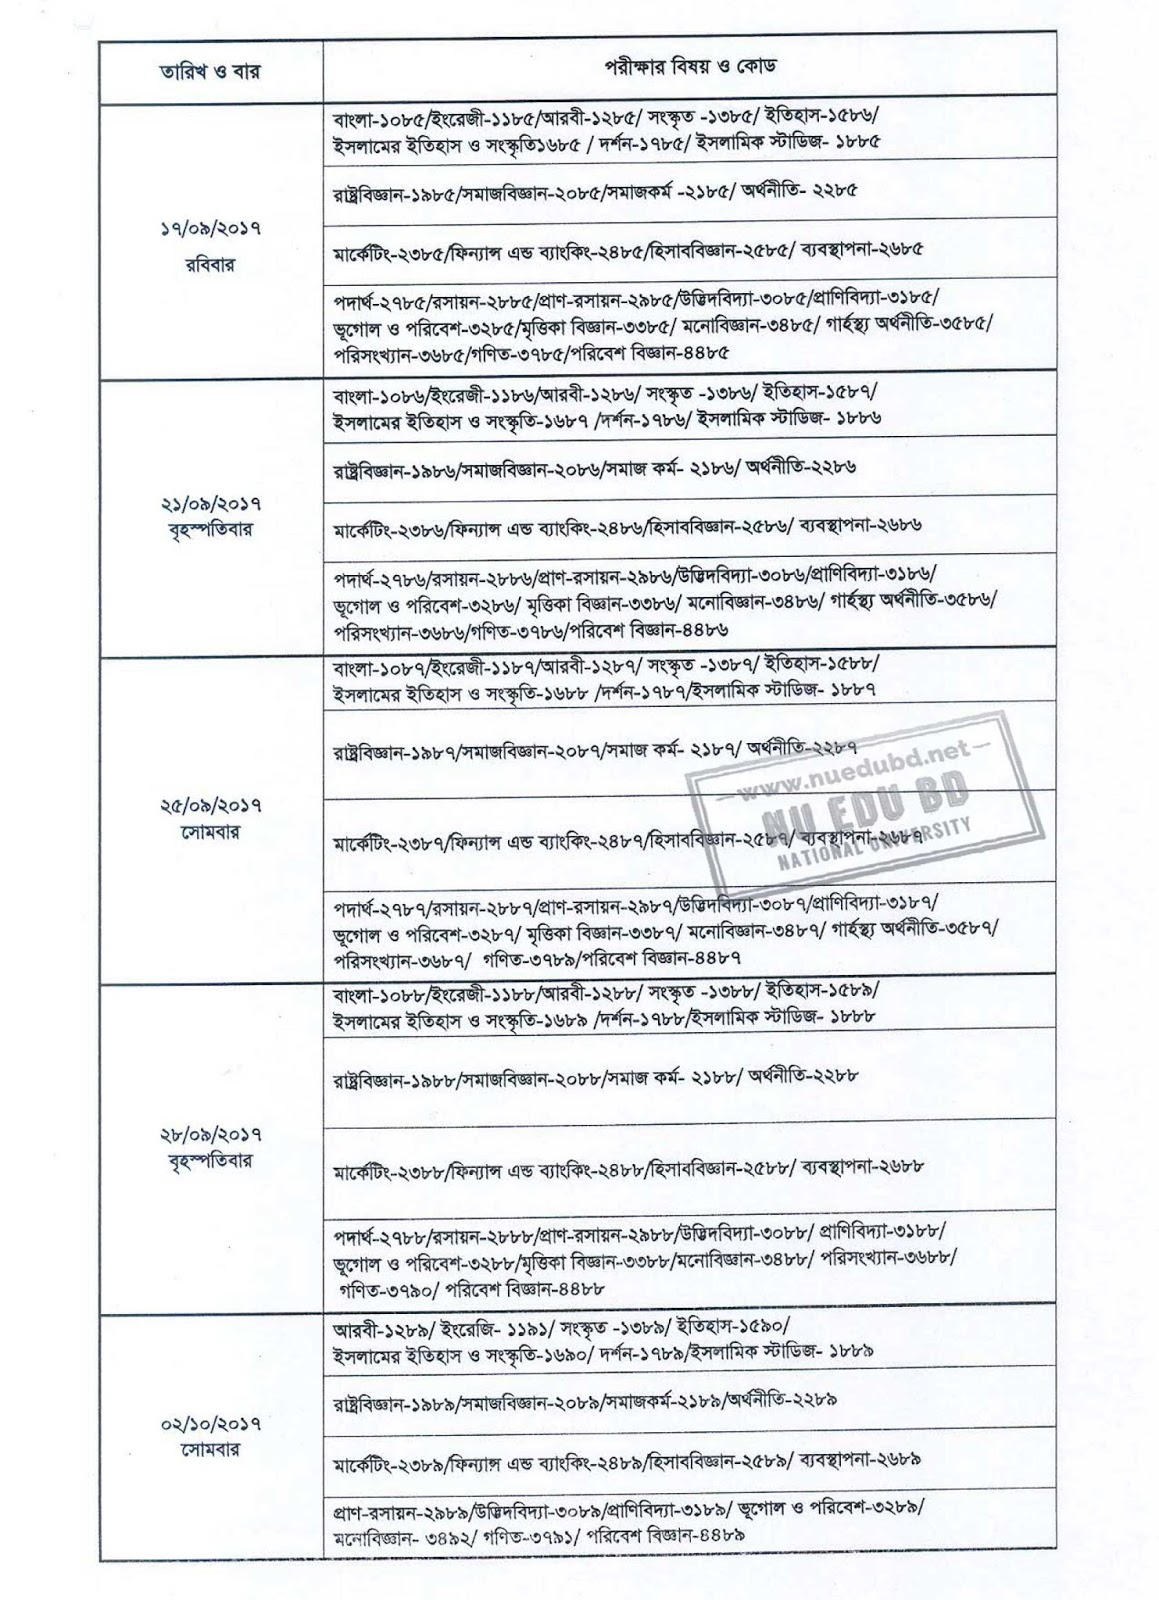 NU Honours 4th Year Routine 2017 [Session 2012-13]